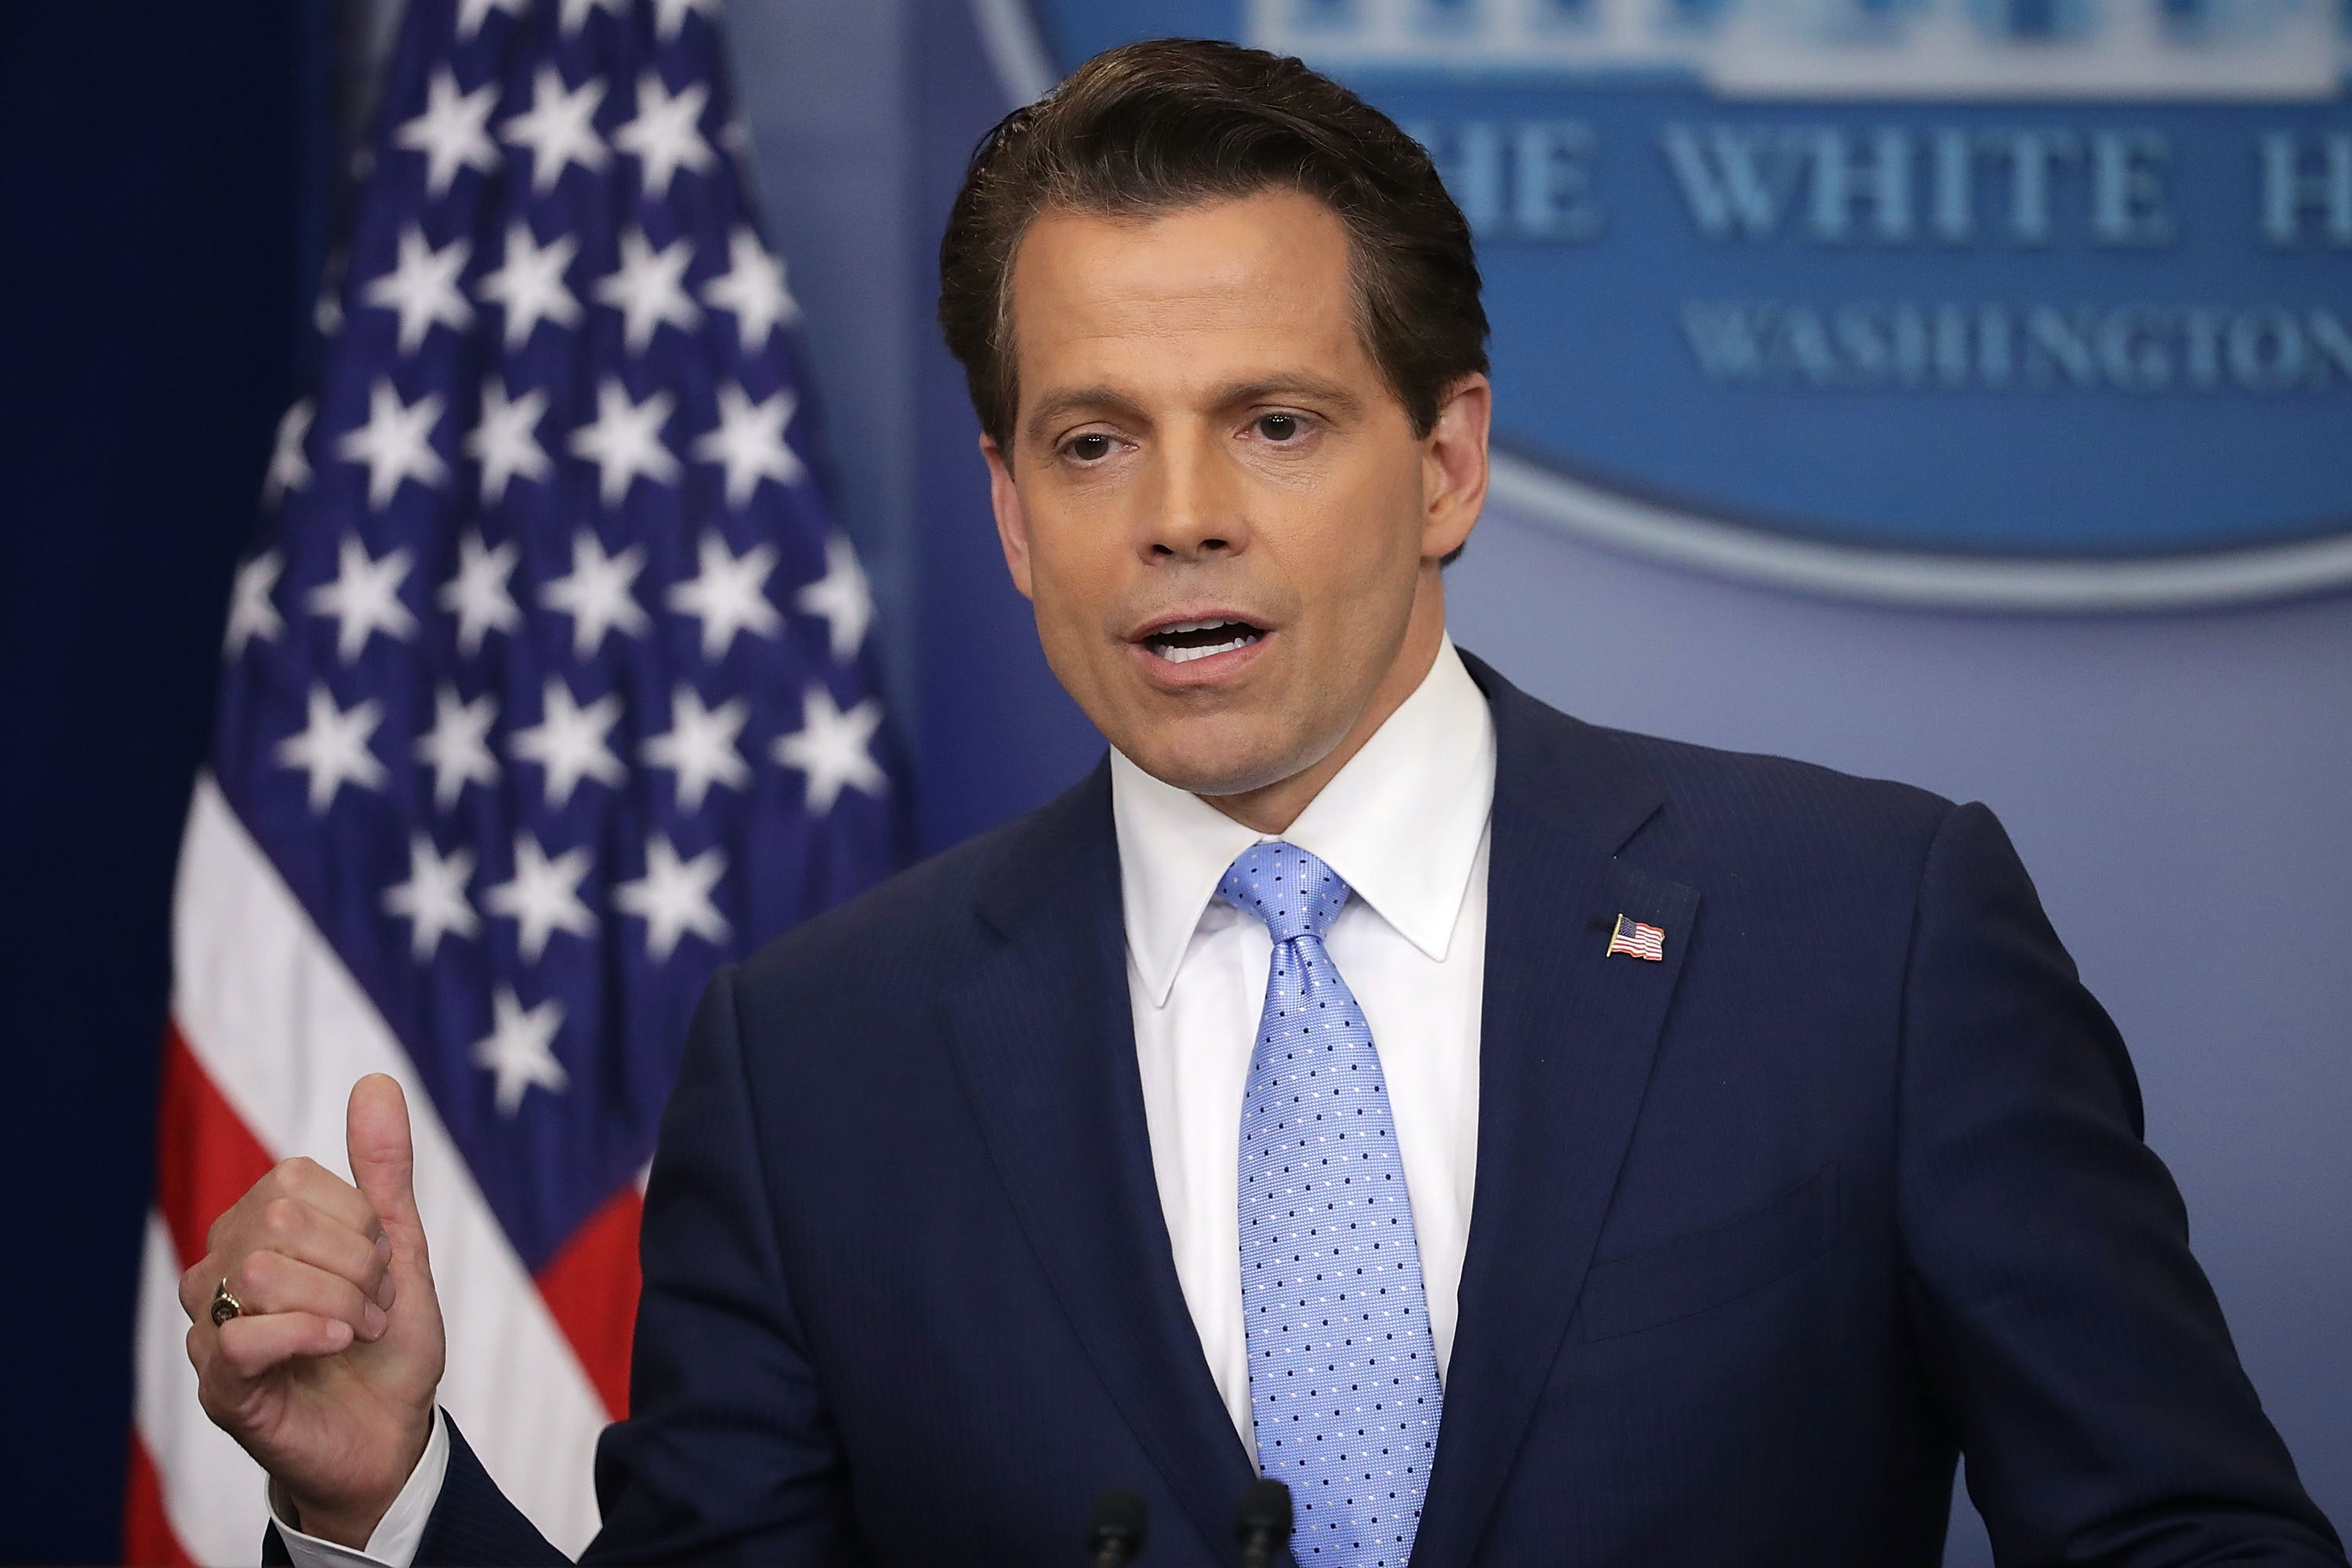 Scaramucci Threatens To Sue Tufts Newspaper Over 'Defamatory' Op-Ed